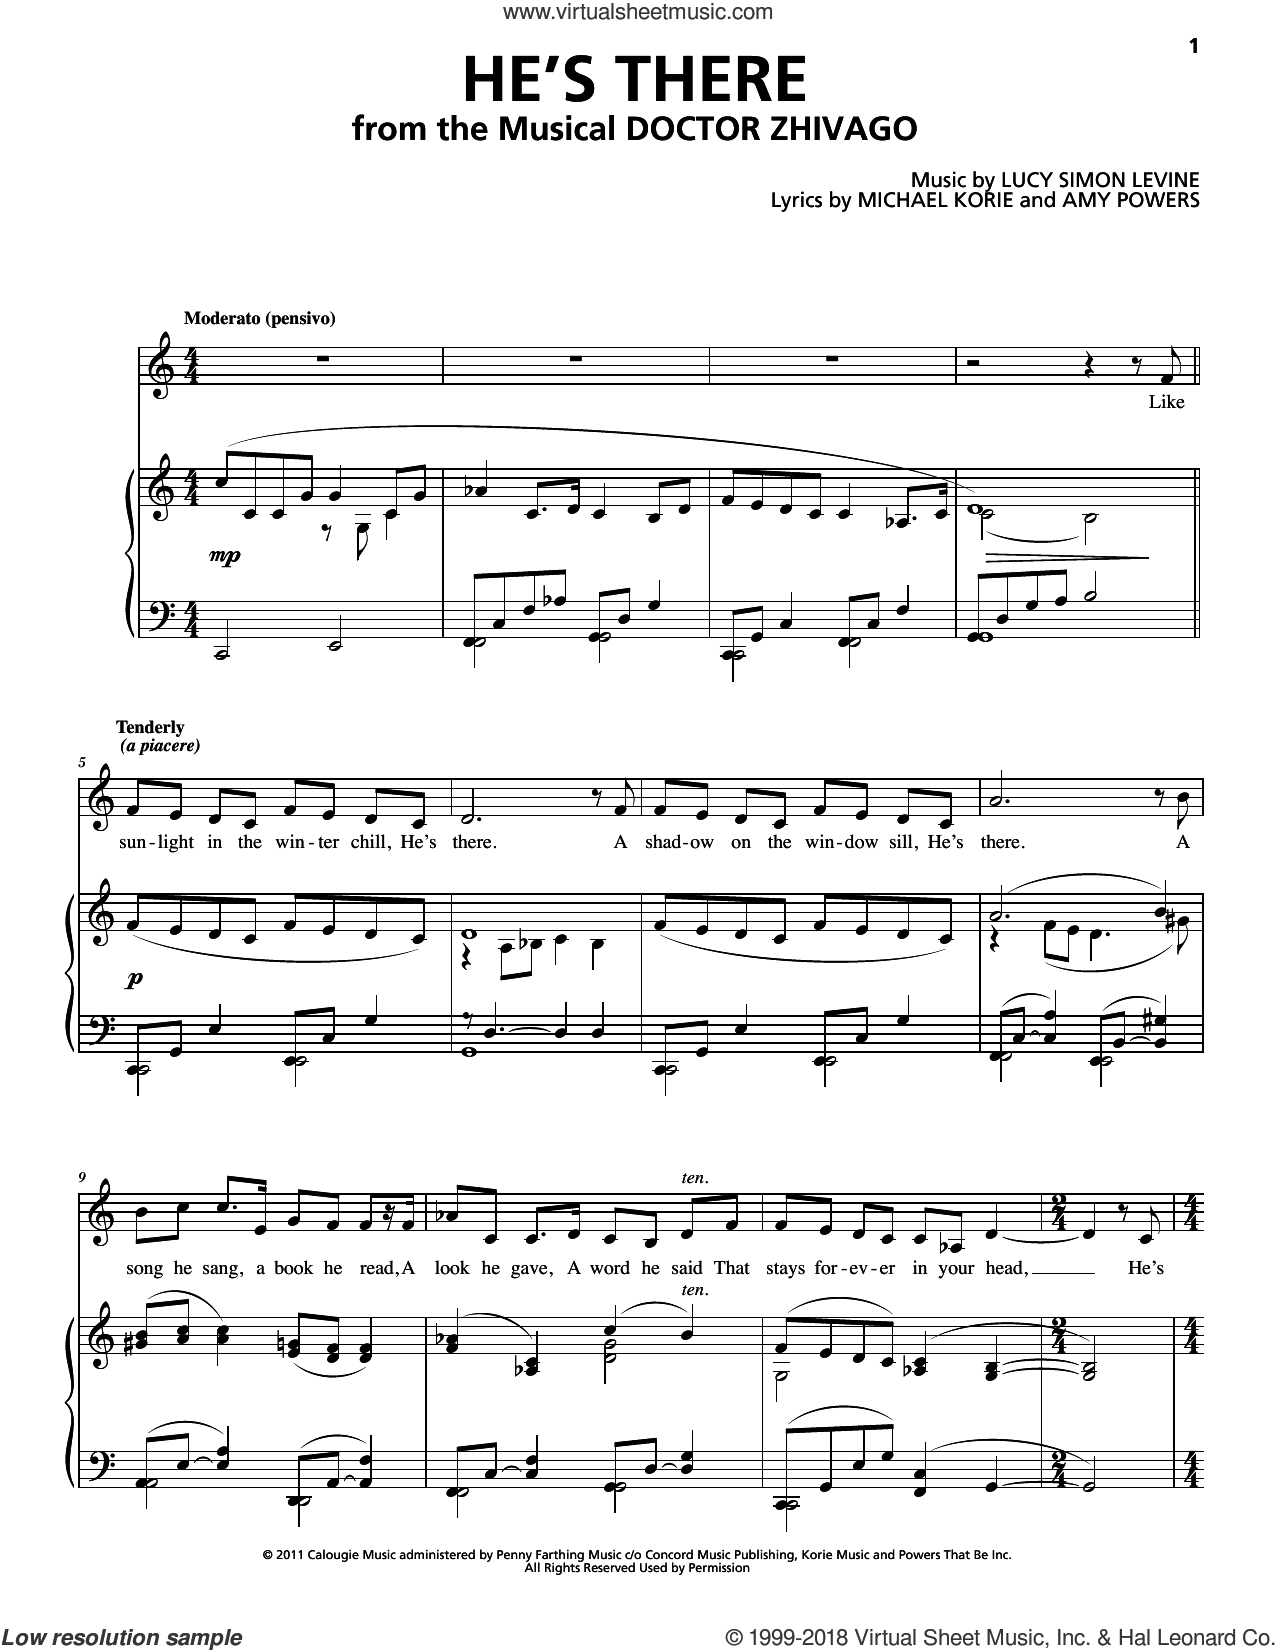 He's There sheet music for voice and piano by Lucy Simon, Amy Powers, Lucy Simon Levine, Lucy Simon Levine and Michael Korie & Amy Powers, Lucy Simon and Michael Korie & Amy Powers and Michael Korie, intermediate skill level